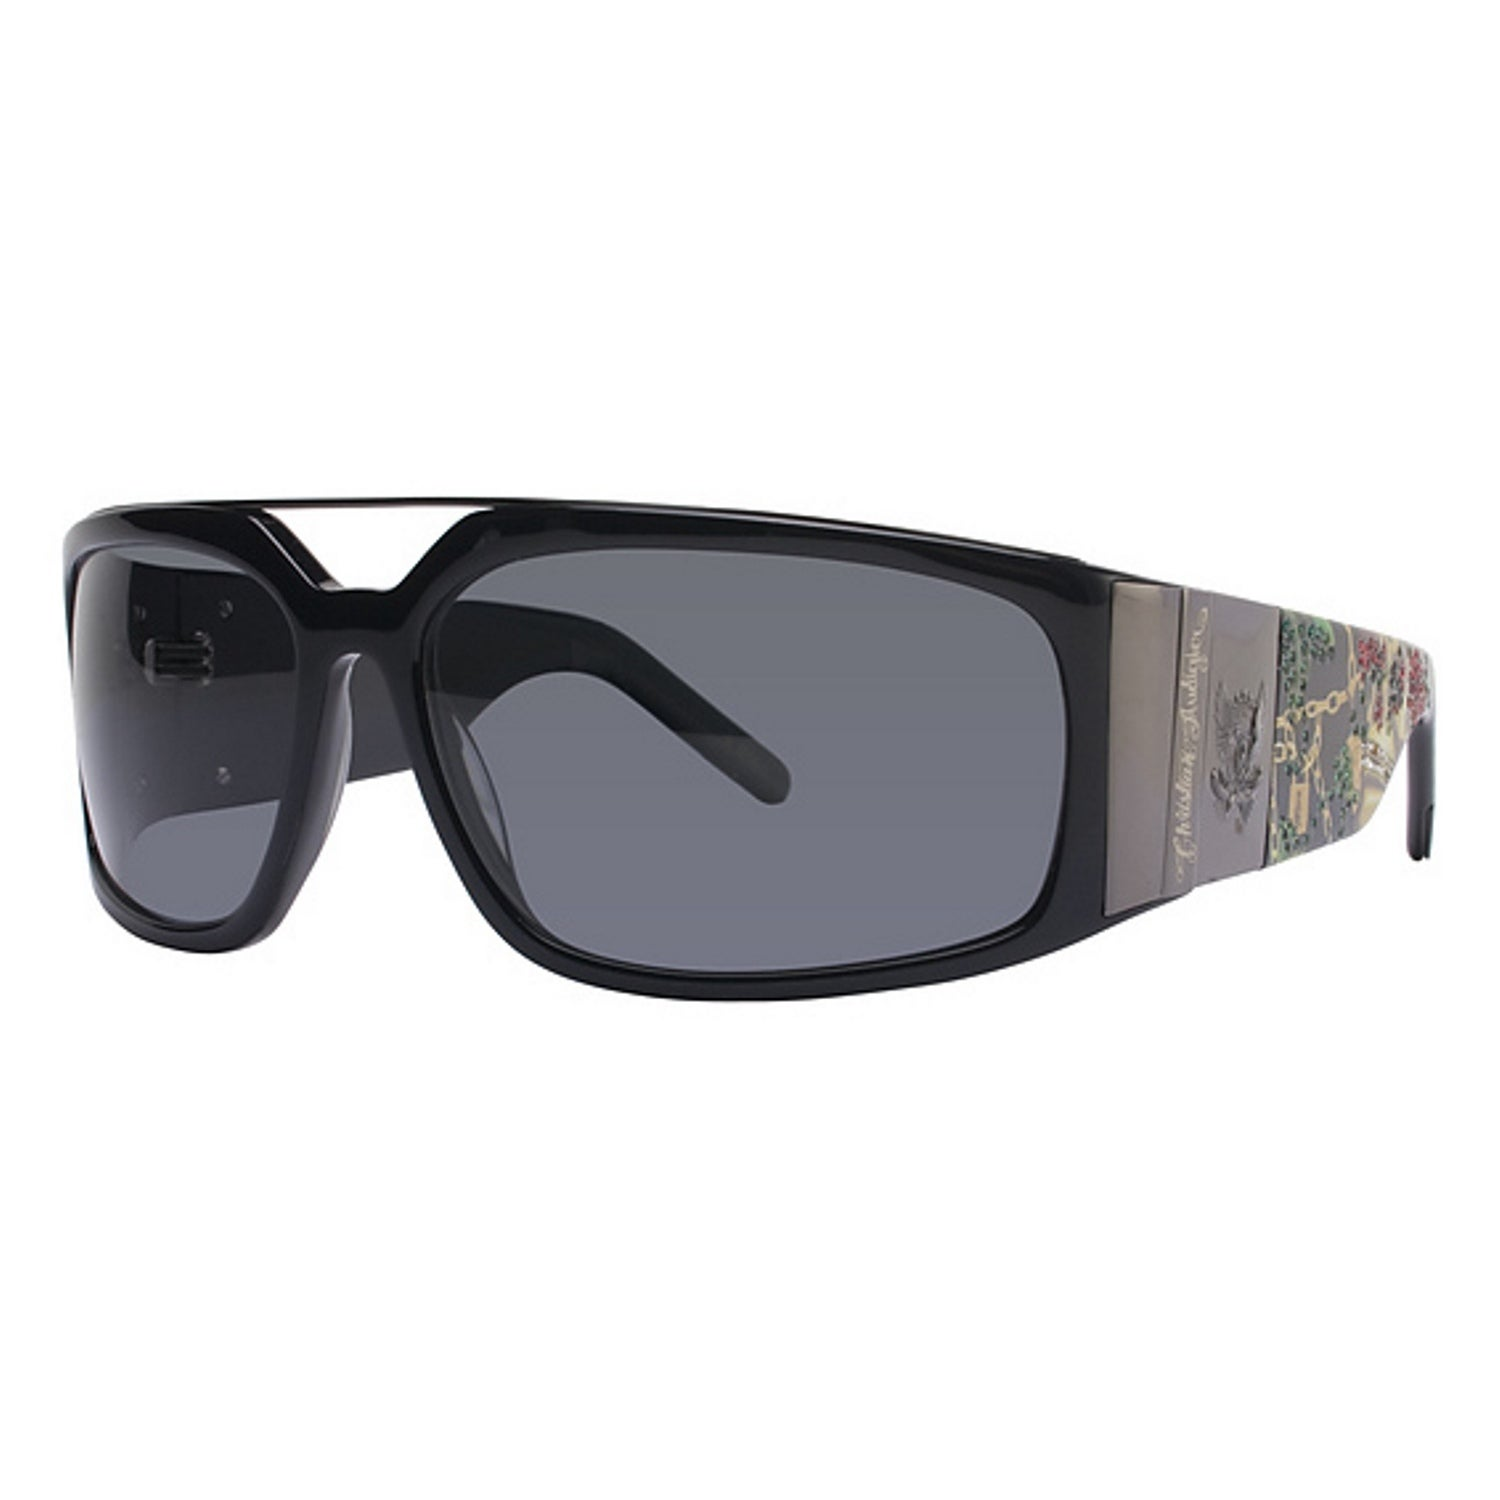 Ed Hardy Christian Audigier 407 Color Black Sunglasses (B...